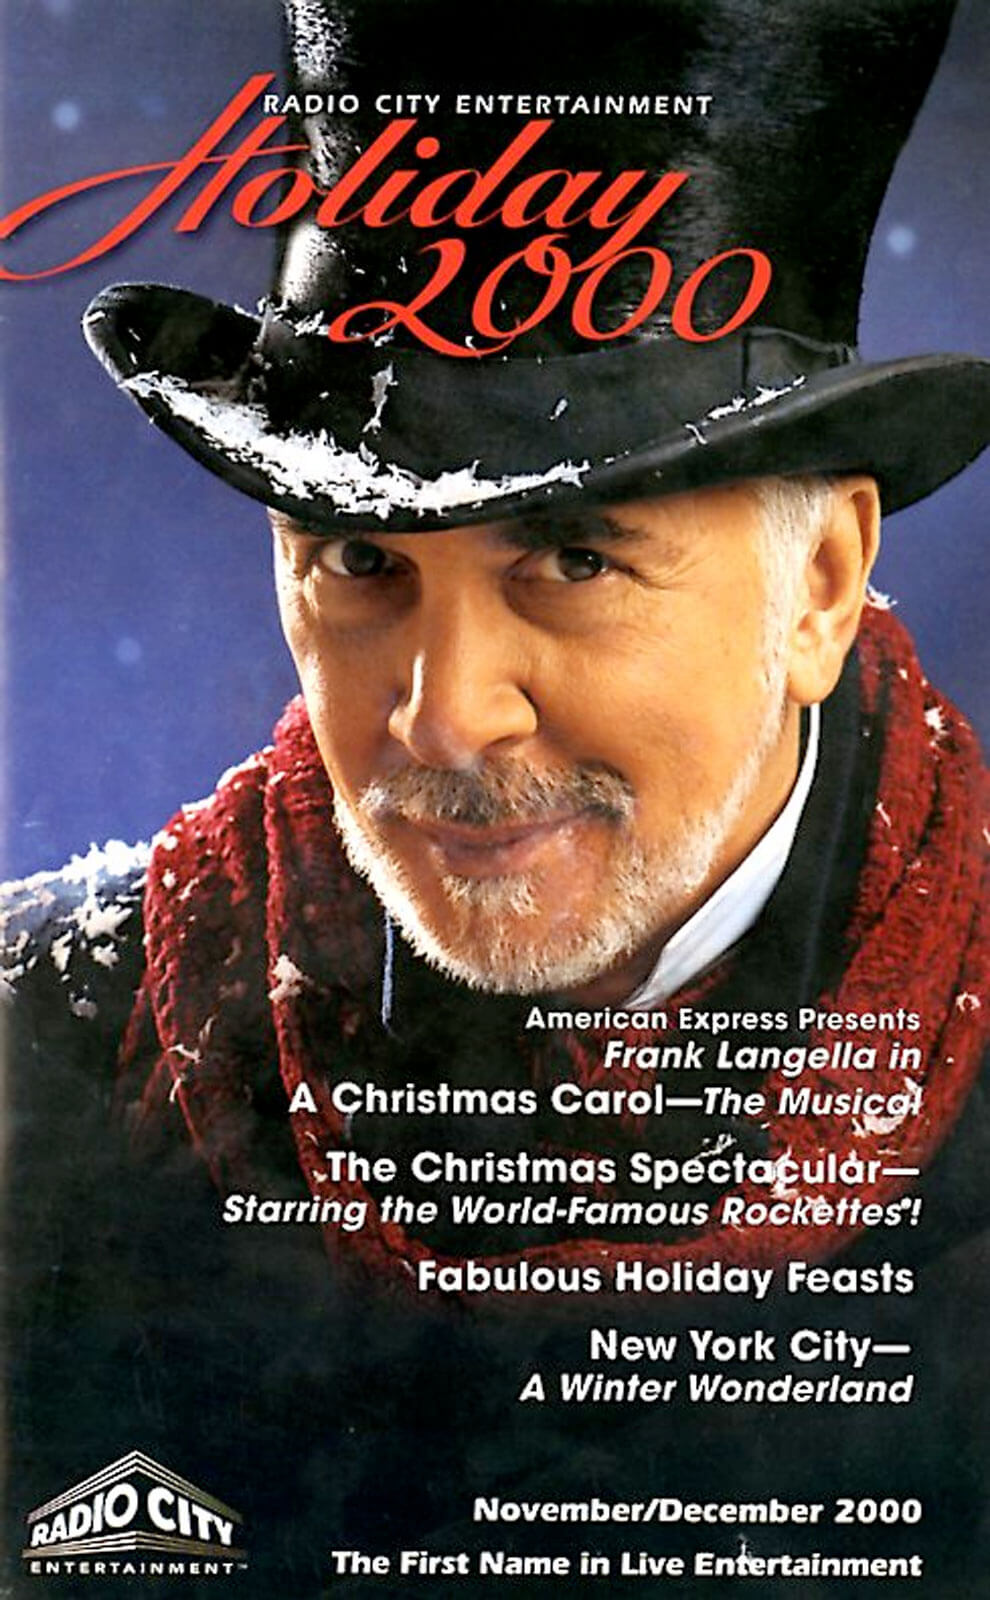 Playbill cover art for the 2000 production featuring Frank Langella as Ebenezer Scrooge, he is wearing a black Top Hat.